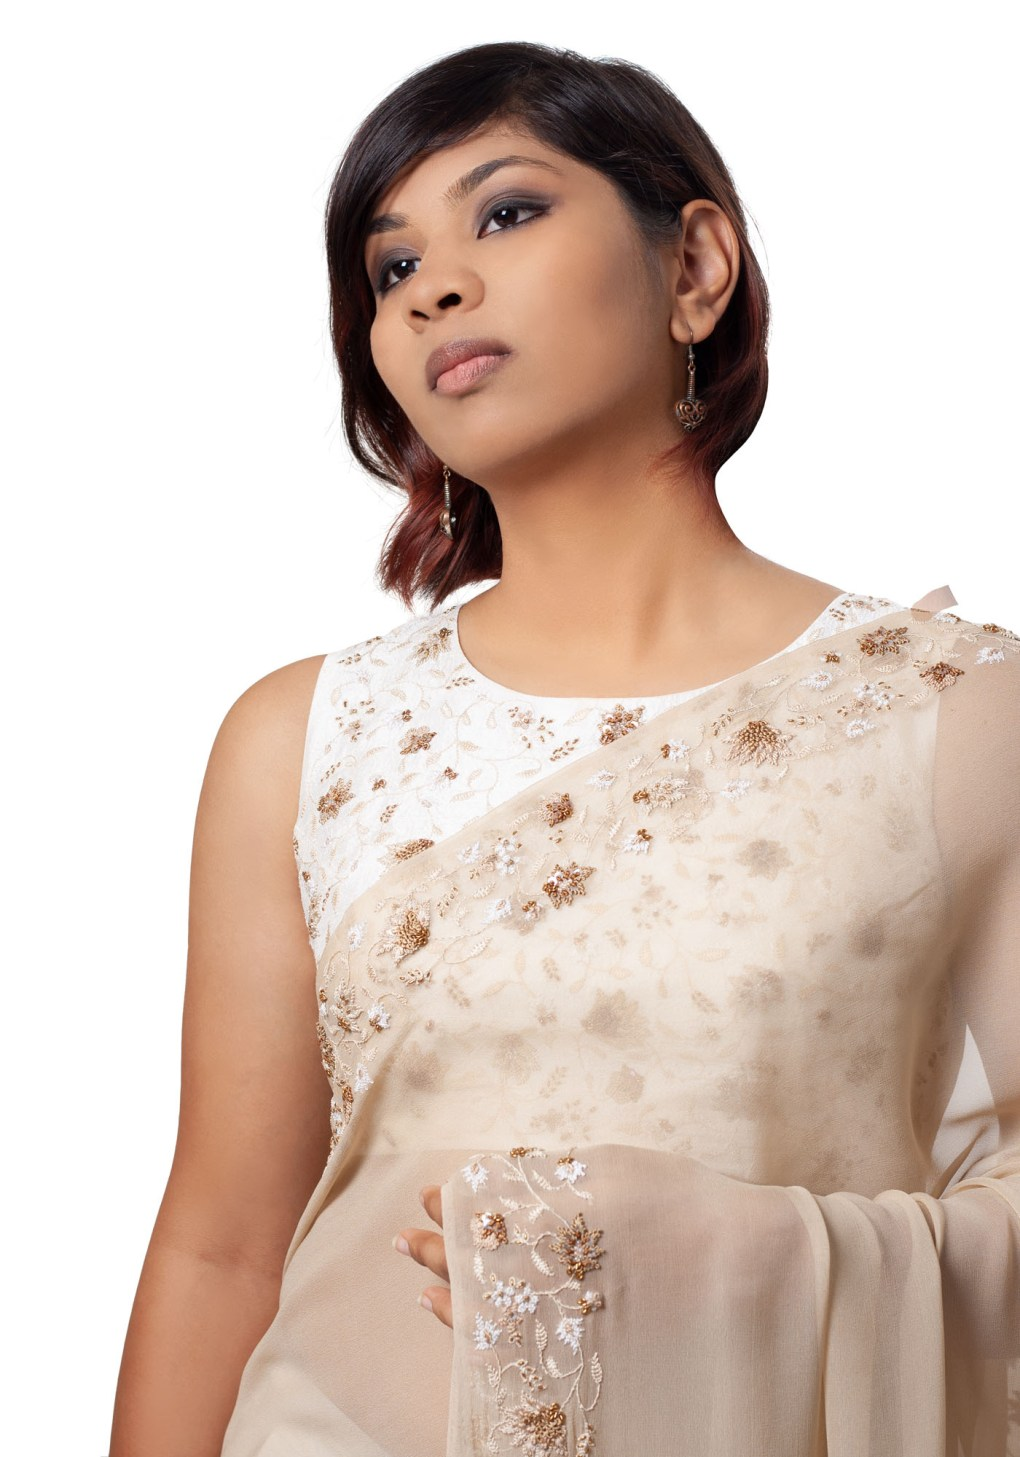 MINC Couture Padmini Hand Crafted Blouse in Ivory Silk